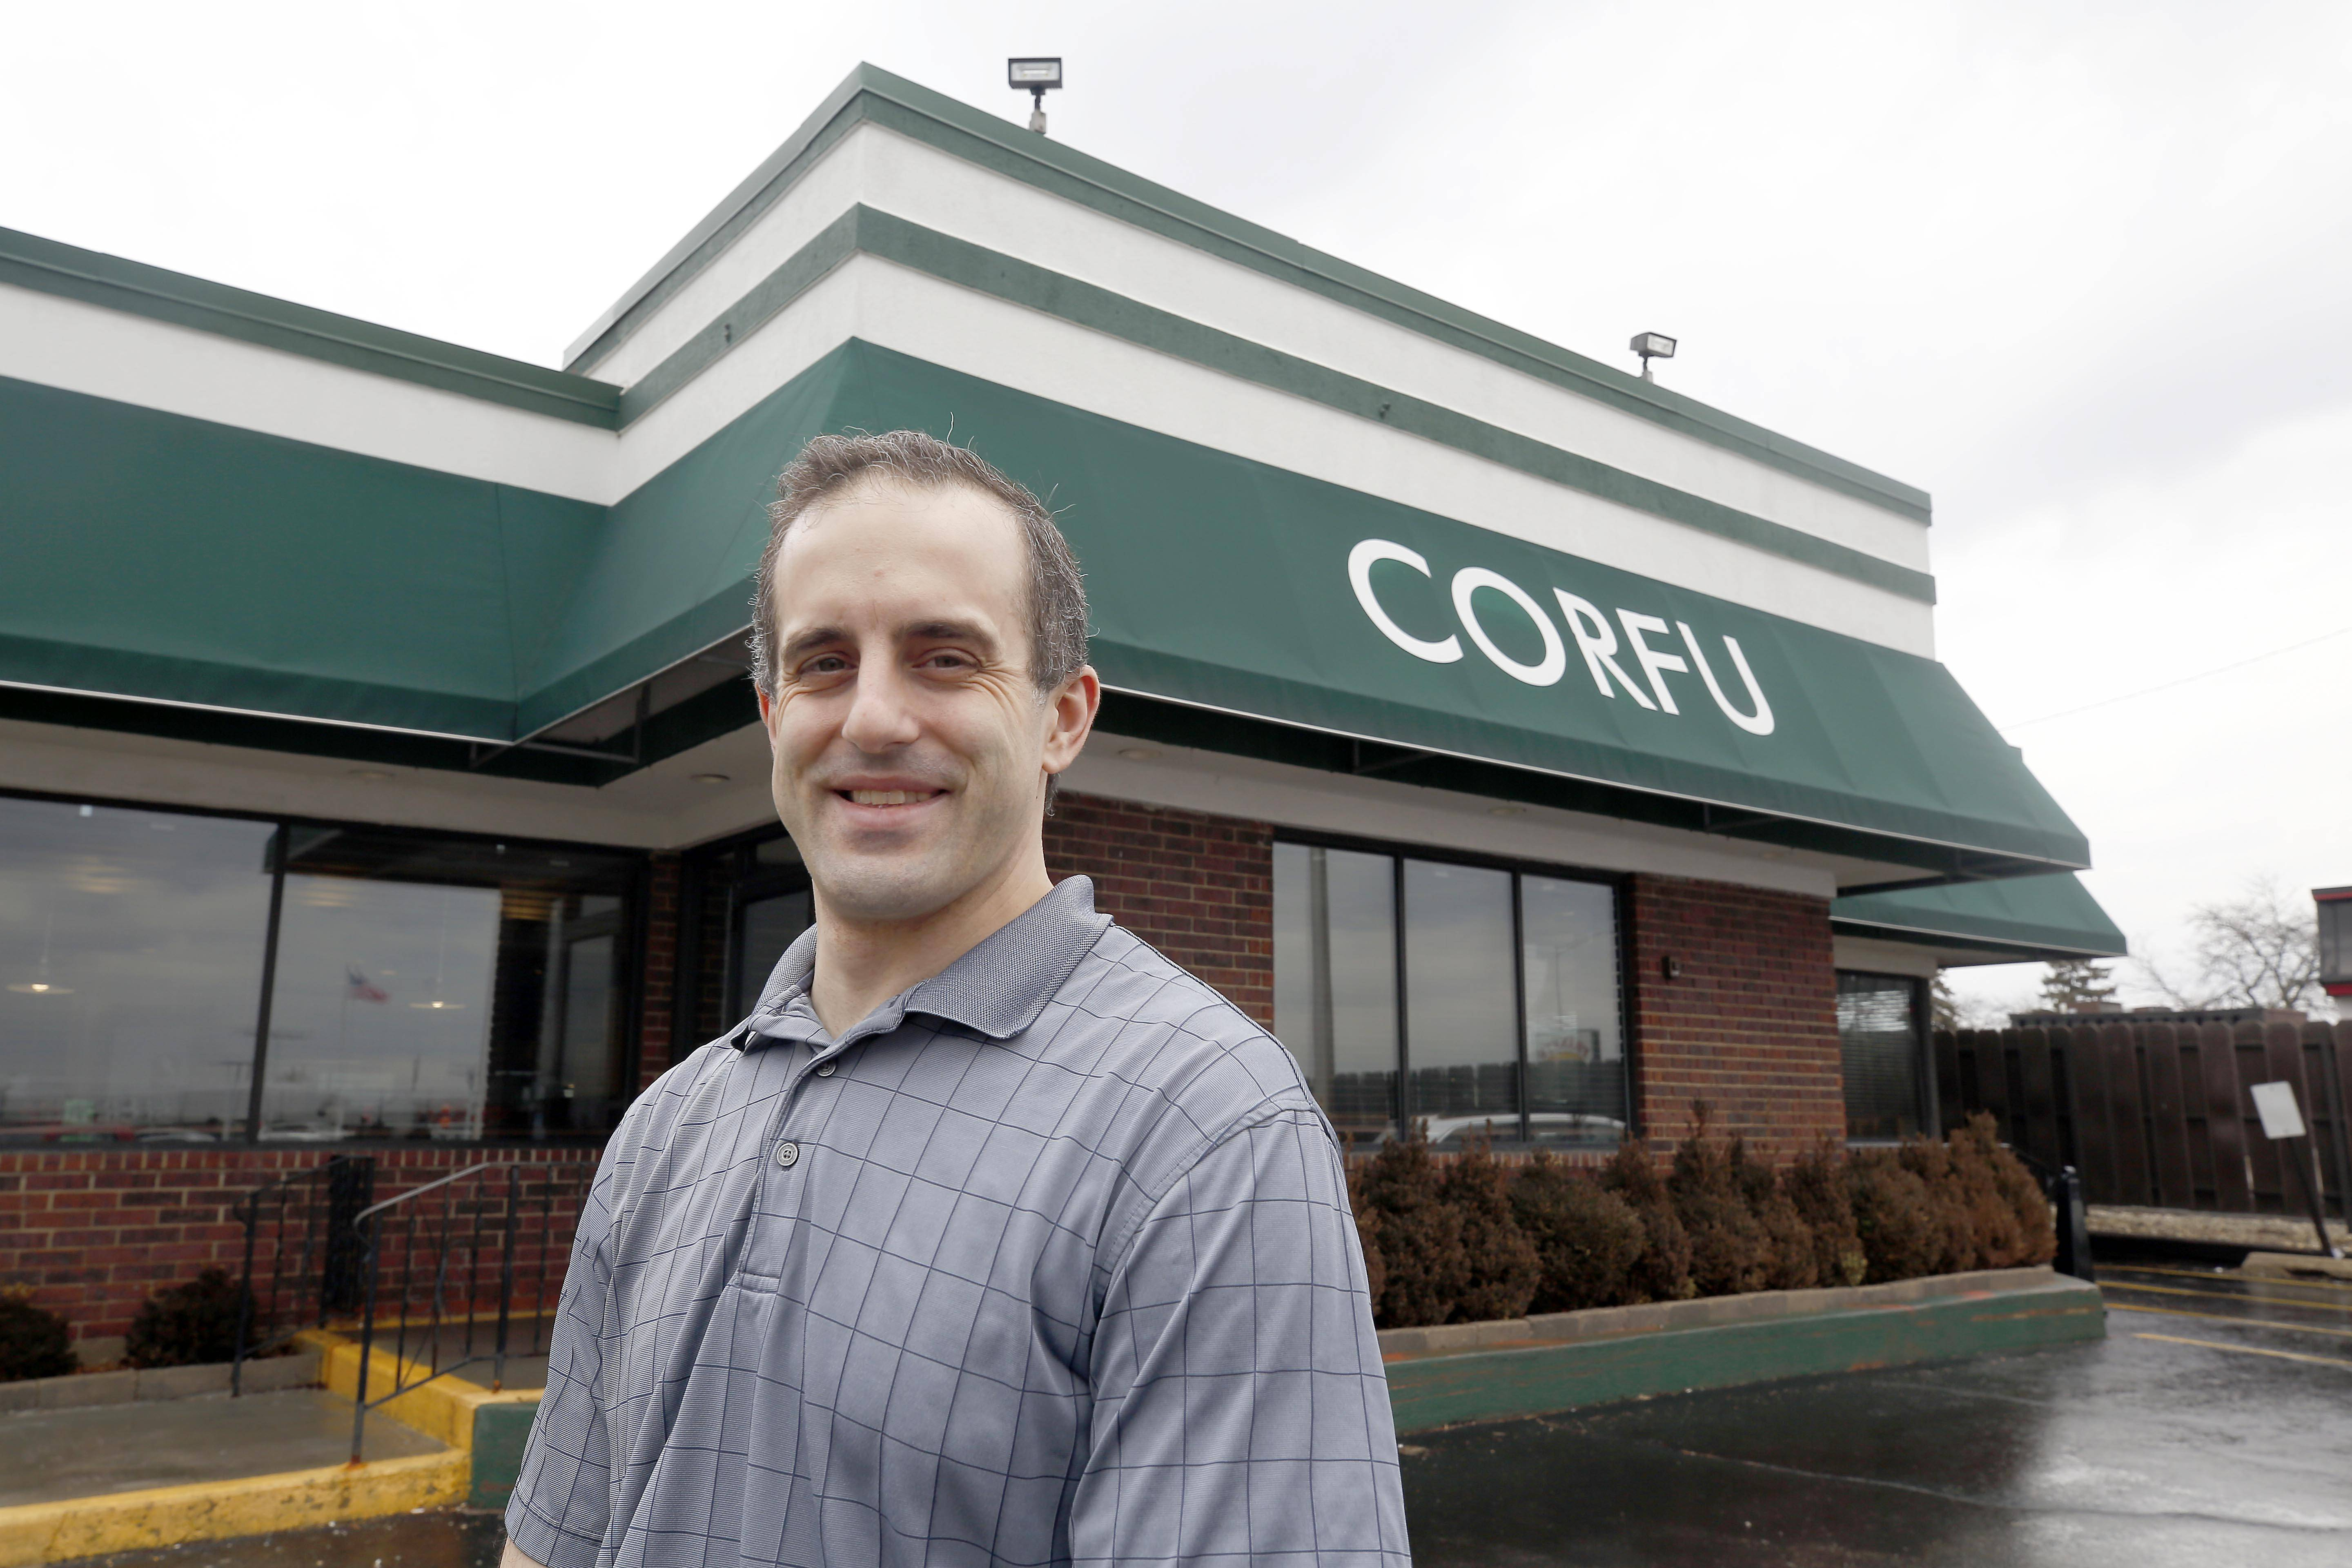 Ari Golegos is the owner of Corfu restaurant in St. Charles. Contrary to rumor, the restaurant has no plans to close.